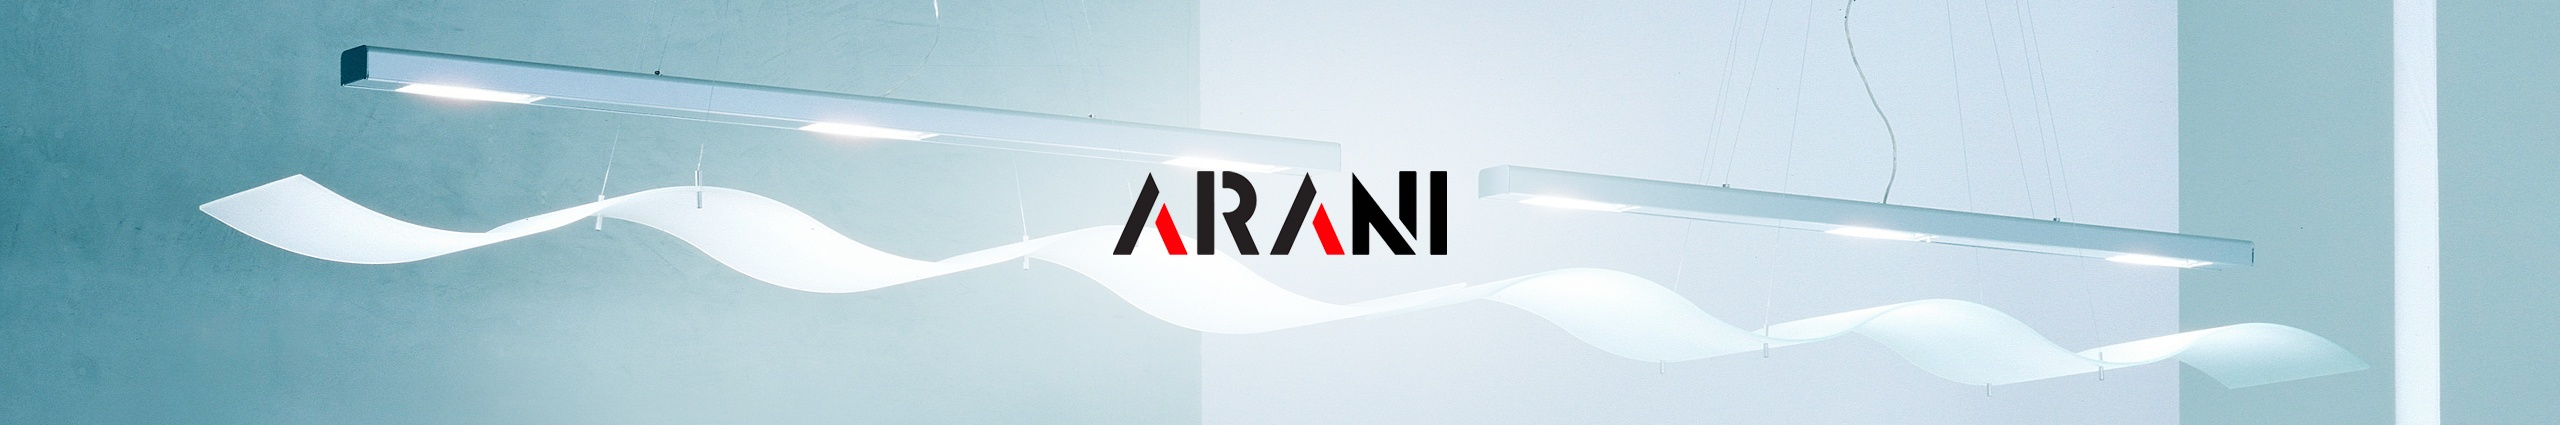 Arani-success-story-APPSeCONNECT